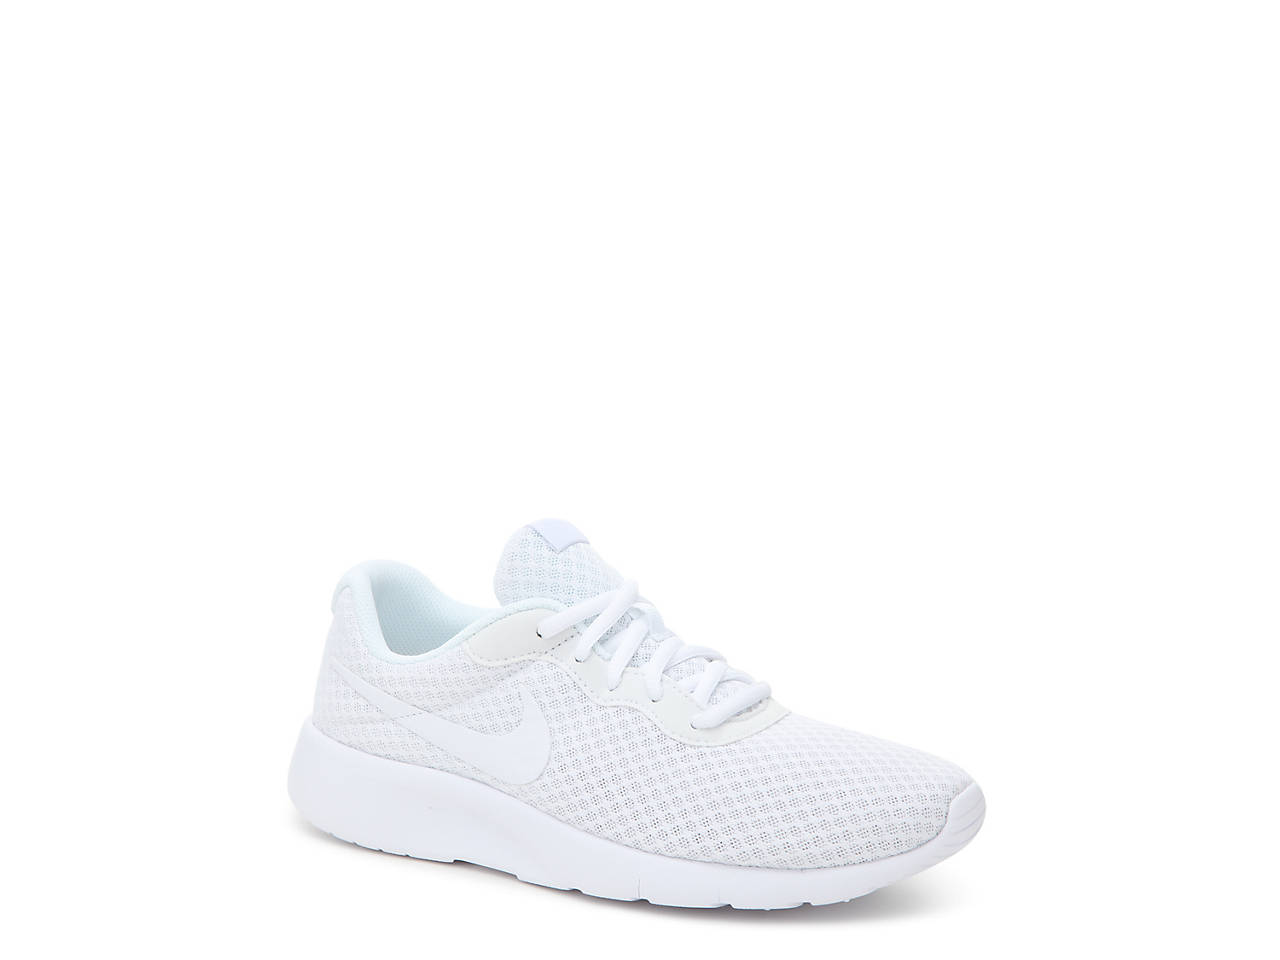 uk availability 8cd05 633c1 Nike. Tanjun Youth Sneaker